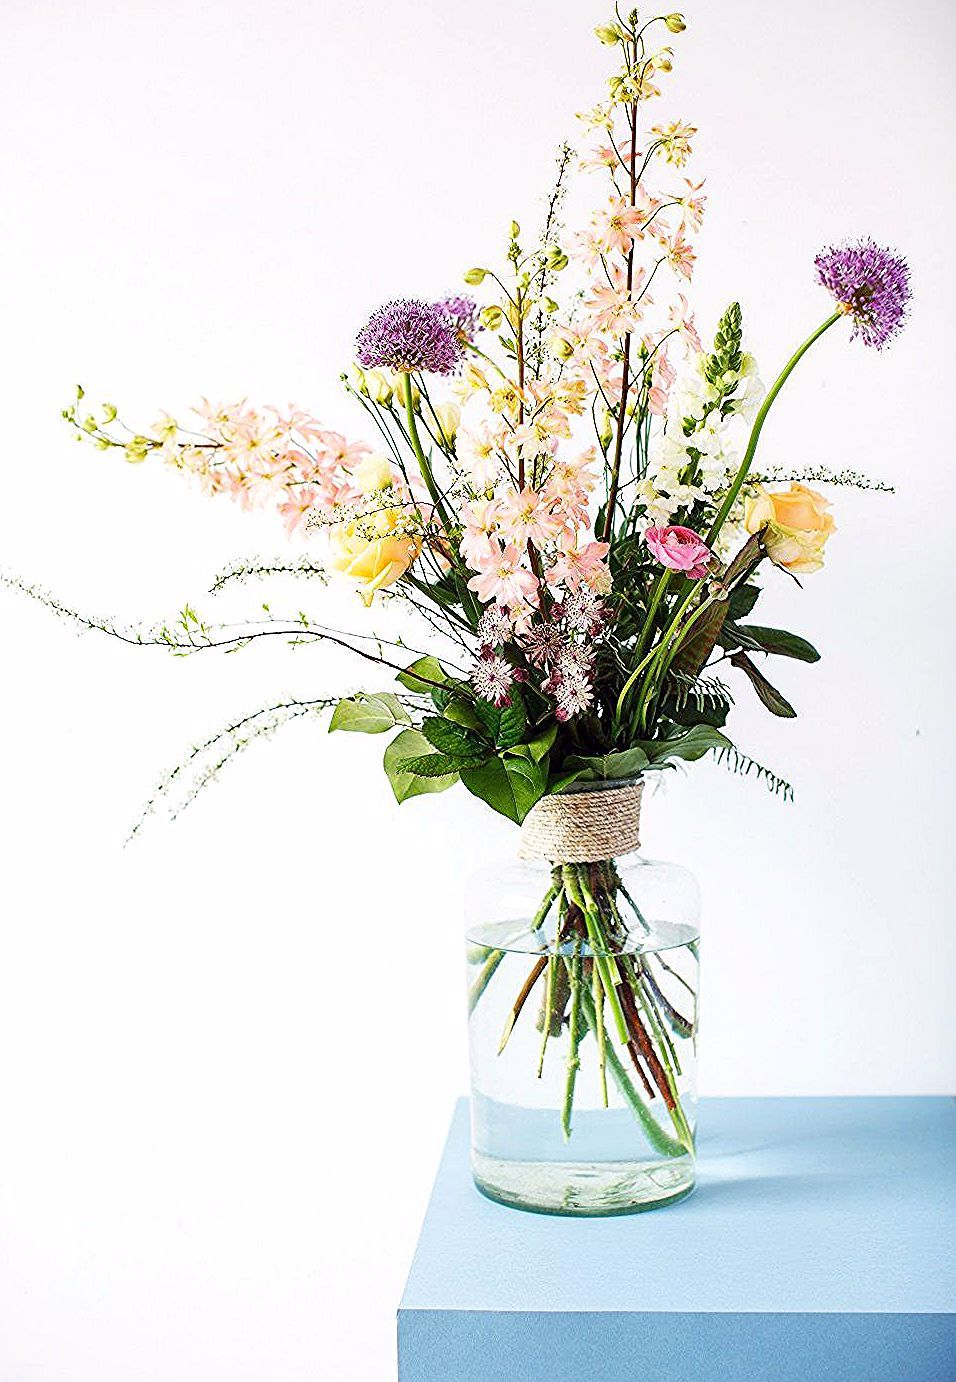 Spring Flowers With A Vintage Country Style Bottle Household Hardware By Www Thu In 2020 Beautiful Flower Arrangements Home Flower Arrangements Flower Arrangements